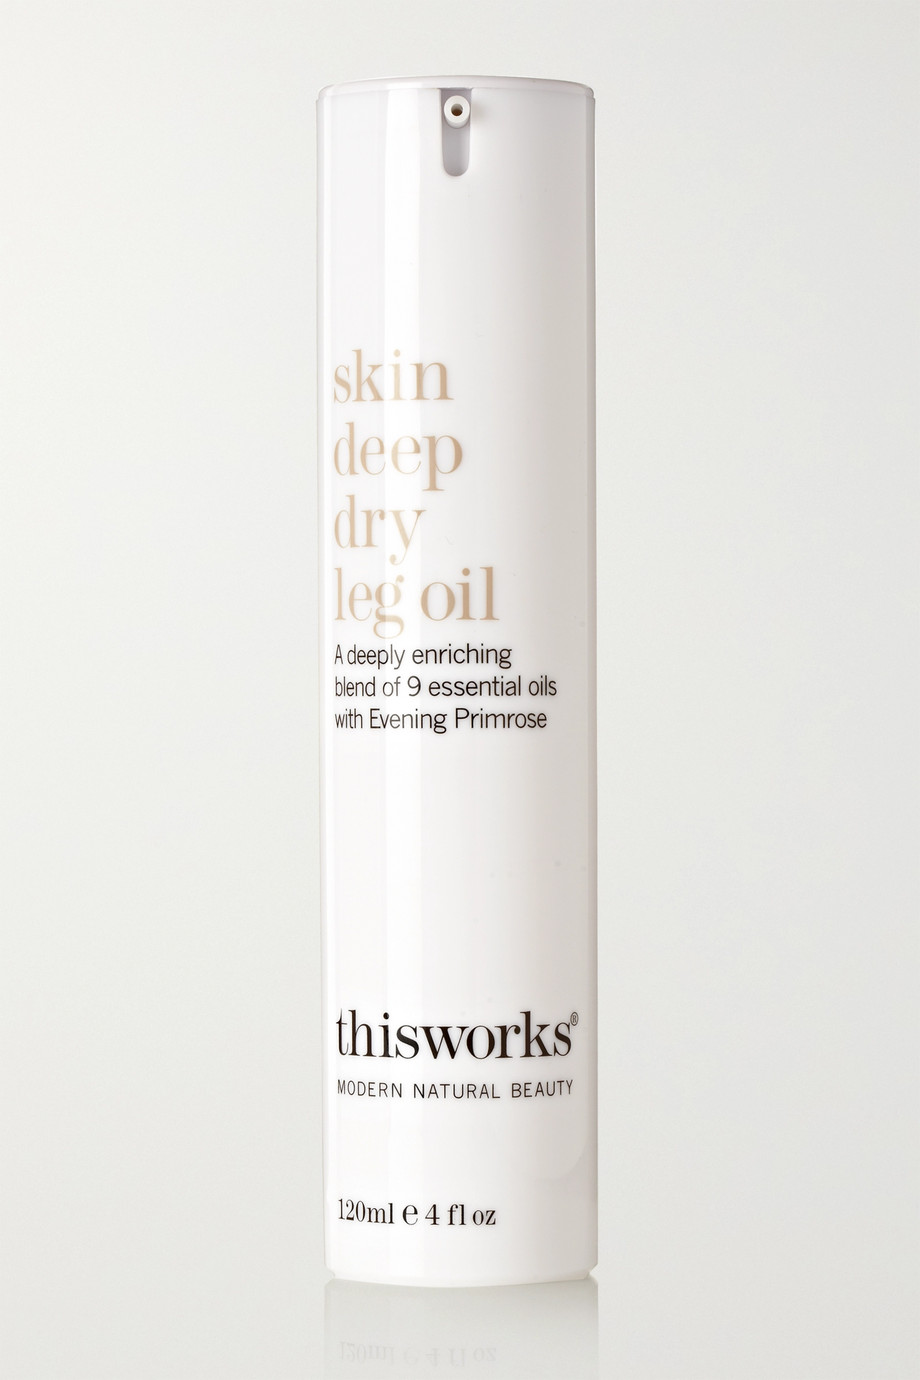 This Works Skin Deep Dry Leg Oil, 120ml – Körperöl